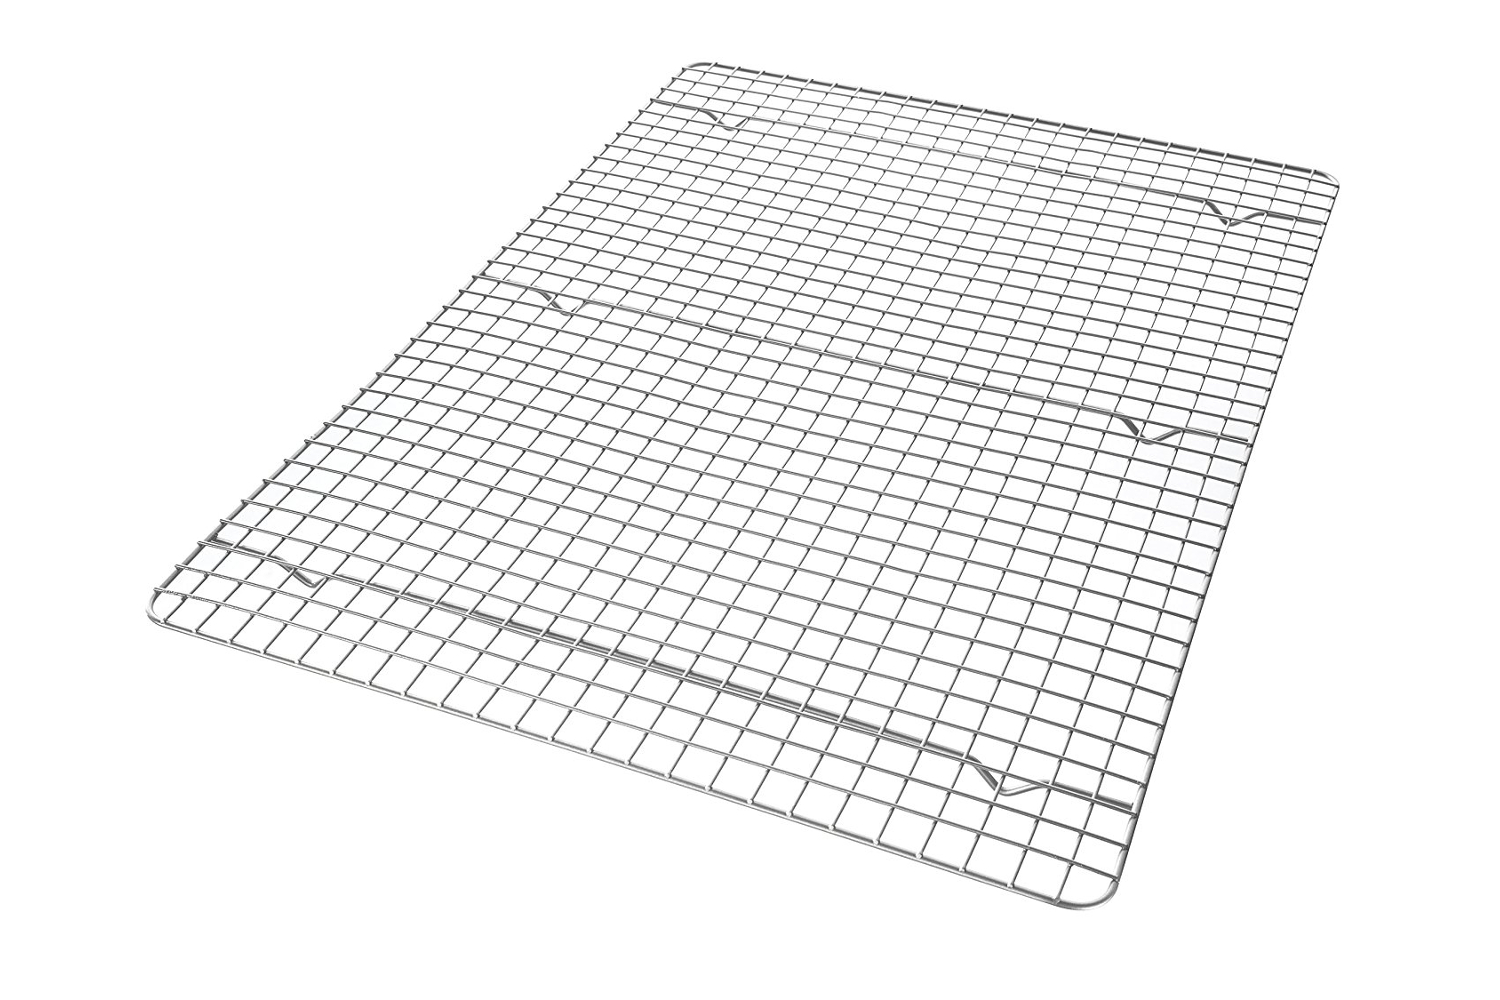 USA Pan Bakeware 19.75 x 13 inch Half Sheet Cooling Rack